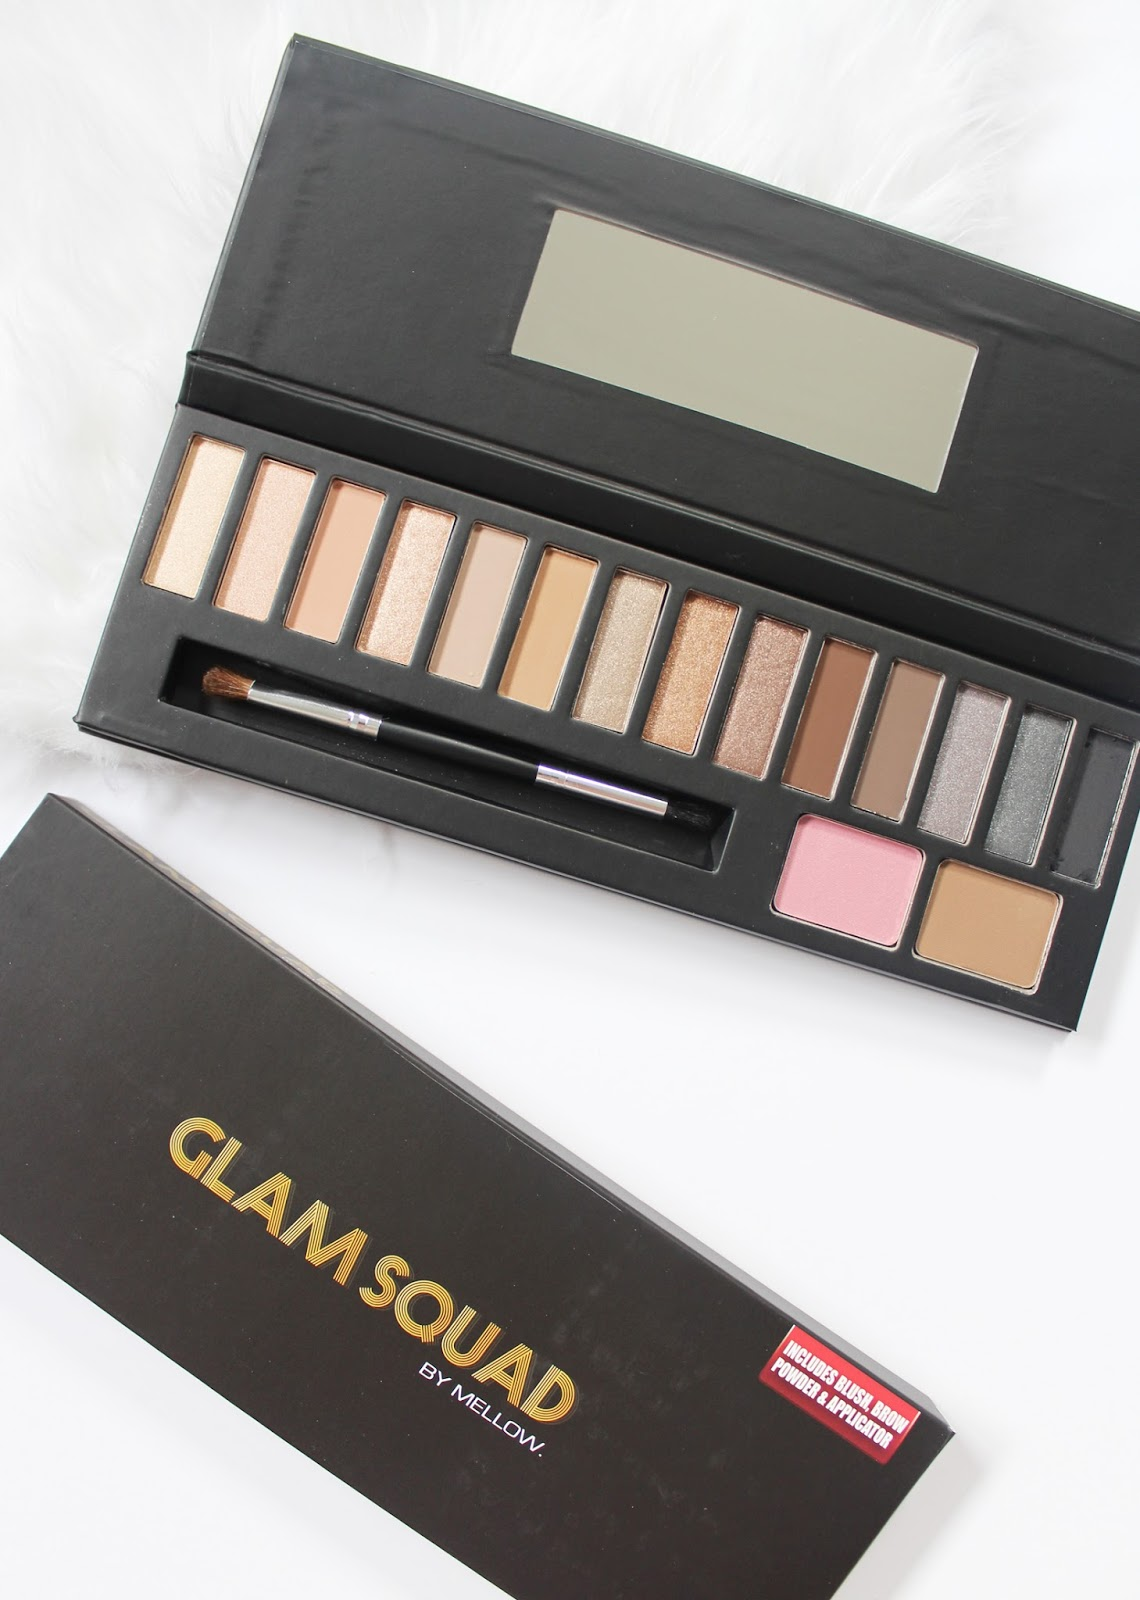 MELLOW COSMETICS | Glam Squad Palette - Review + Swatches - CassandraMyee